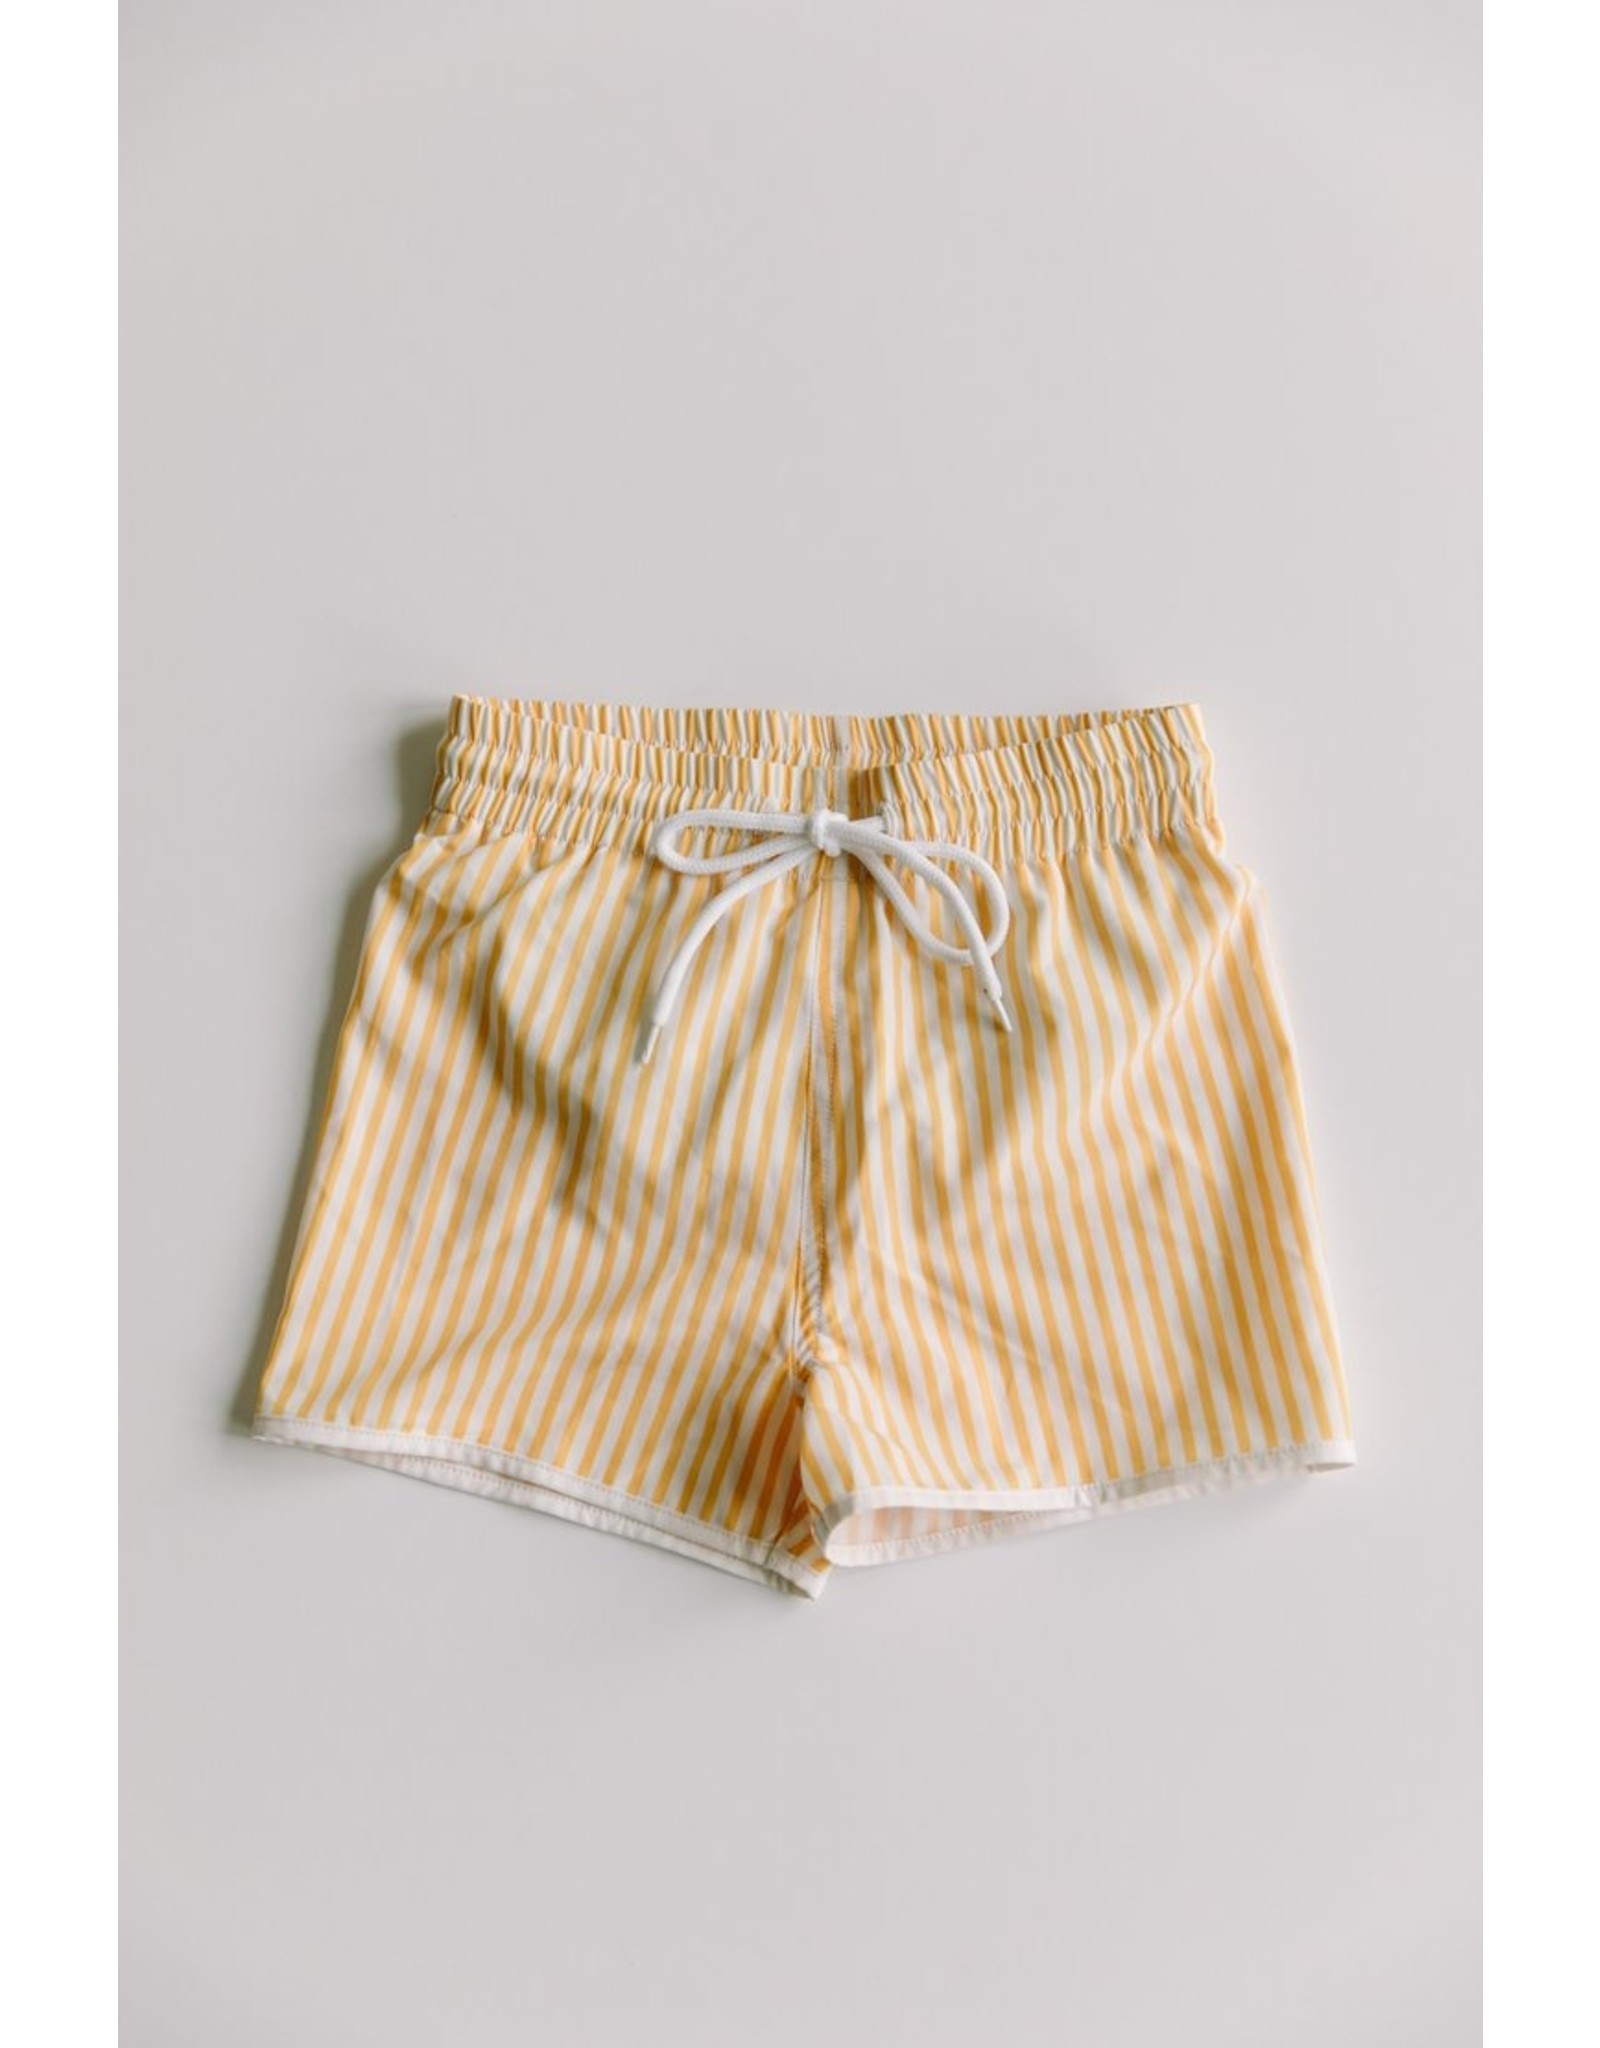 Sunberryco Boy's Yellow Striped Shorts